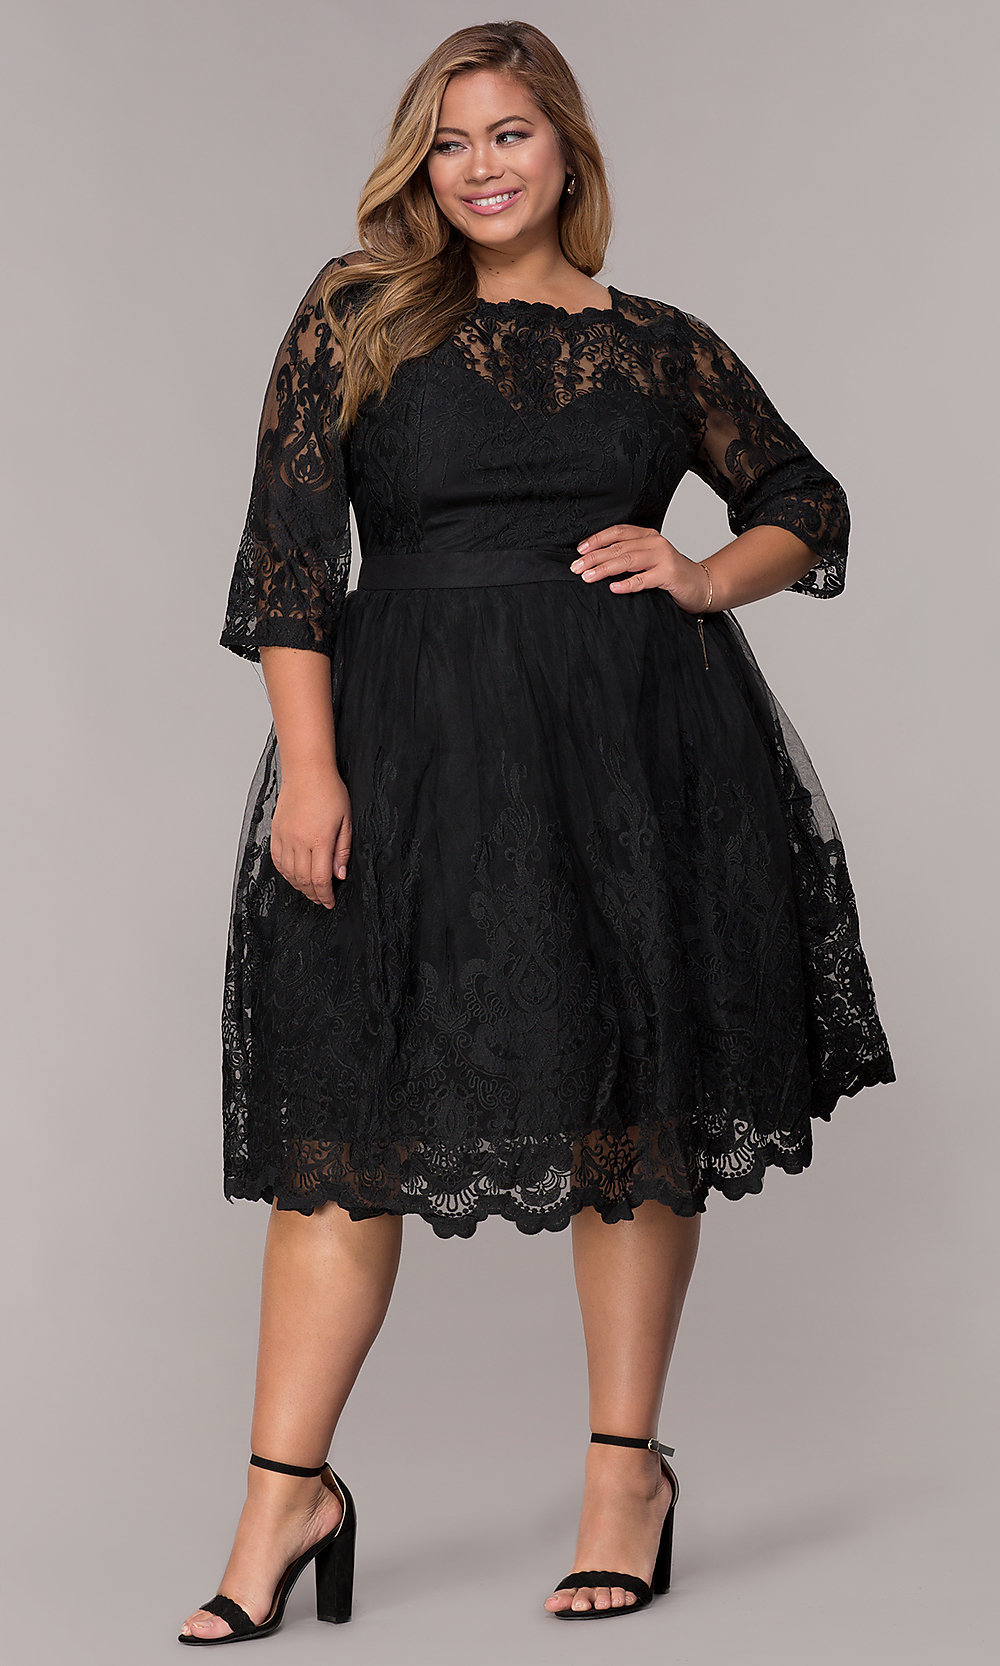 short 34sleeve lace plussize weddingguest dress